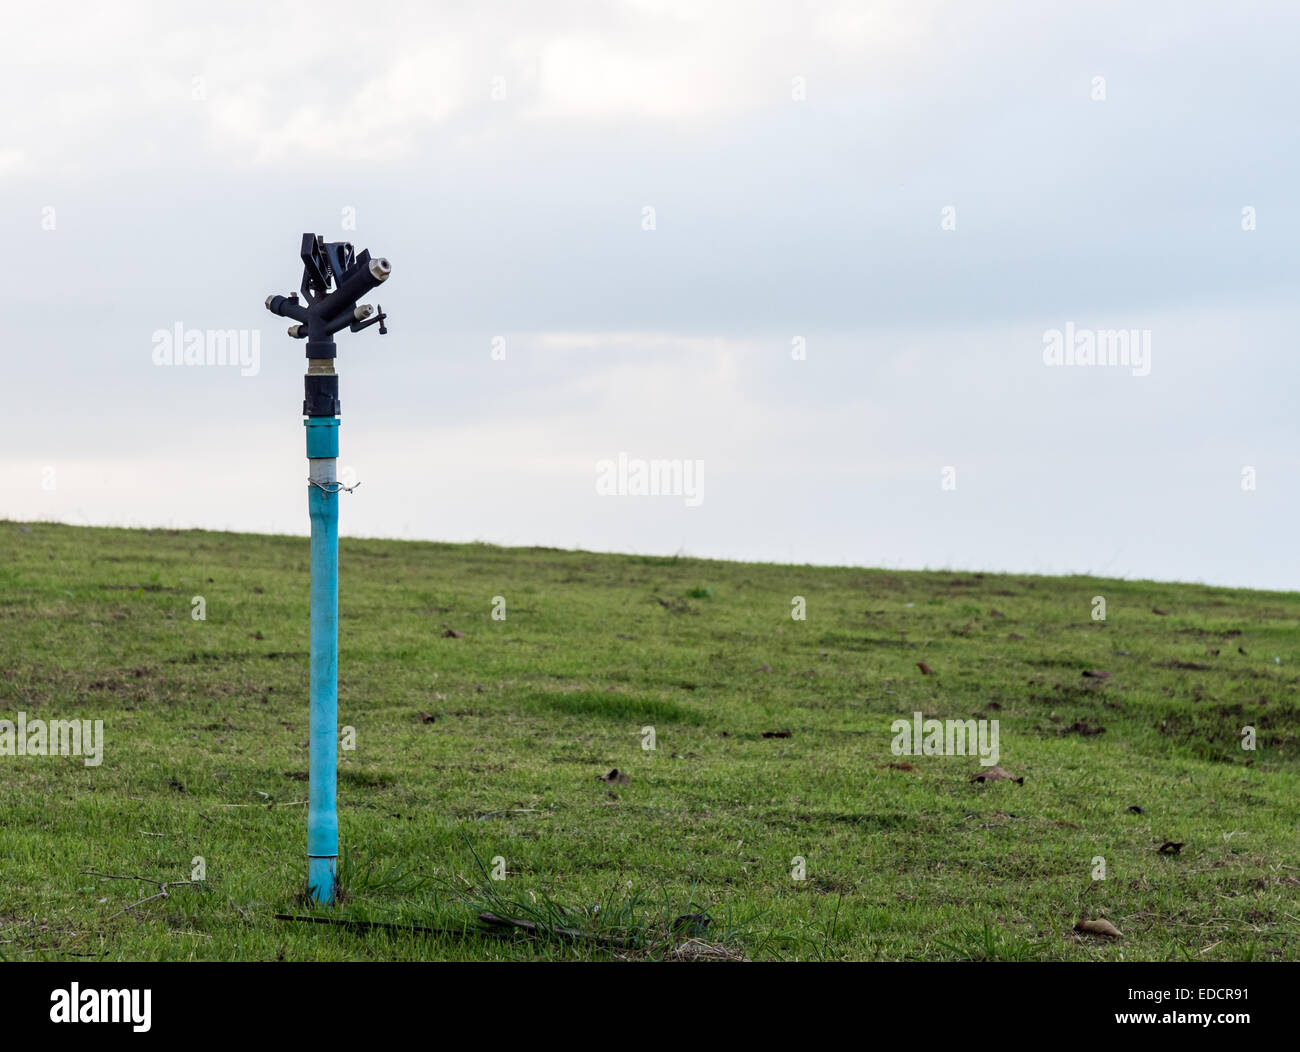 Automatic sprinkle in the lawn of farmland. - Stock Image